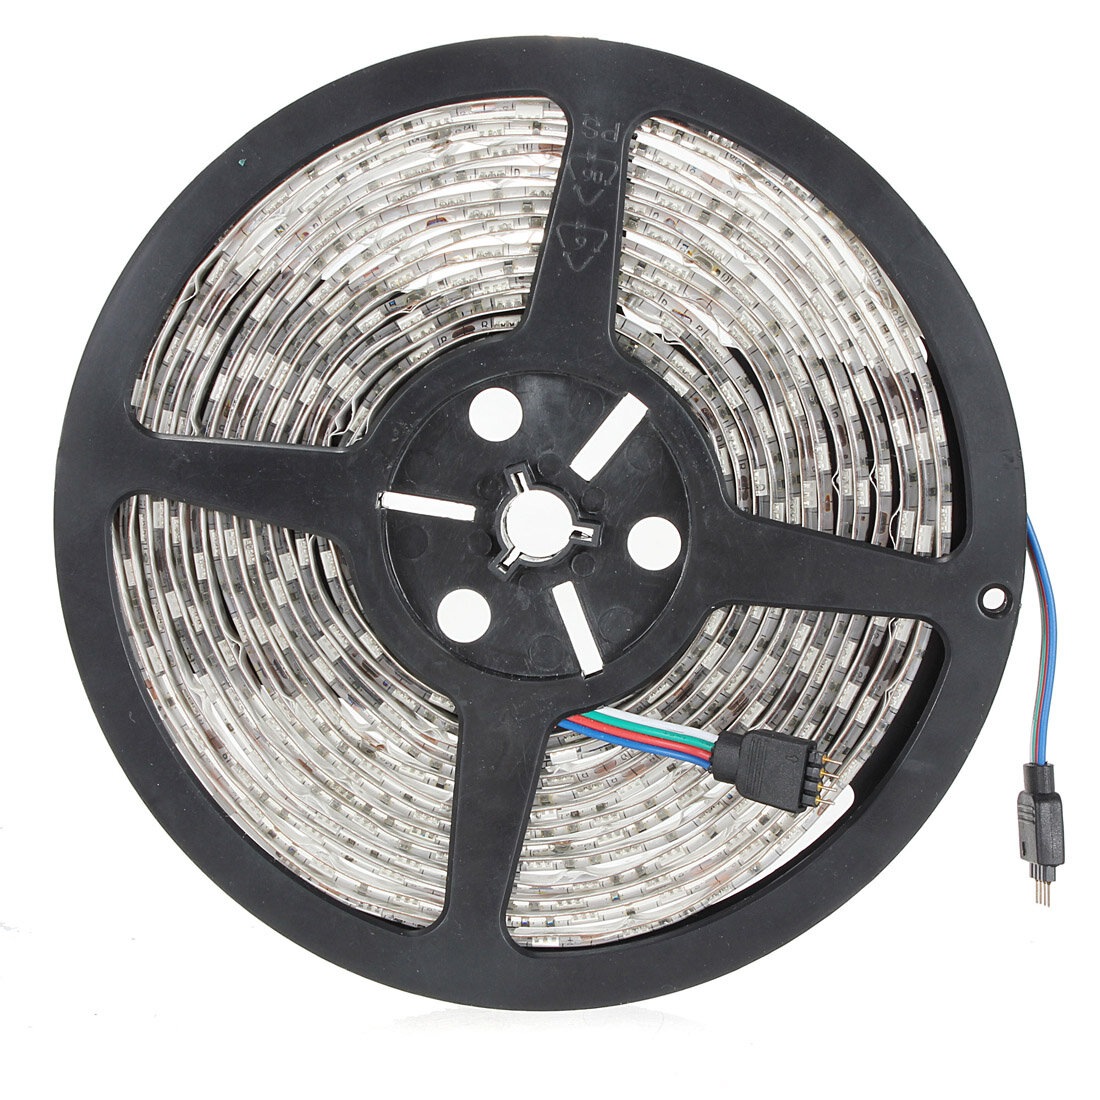 DC12V 5IN1 RGB+CCT LED Strip Light 5050 Flexible Tape Non-waterproof Indoor Lamp Home Decor - 8